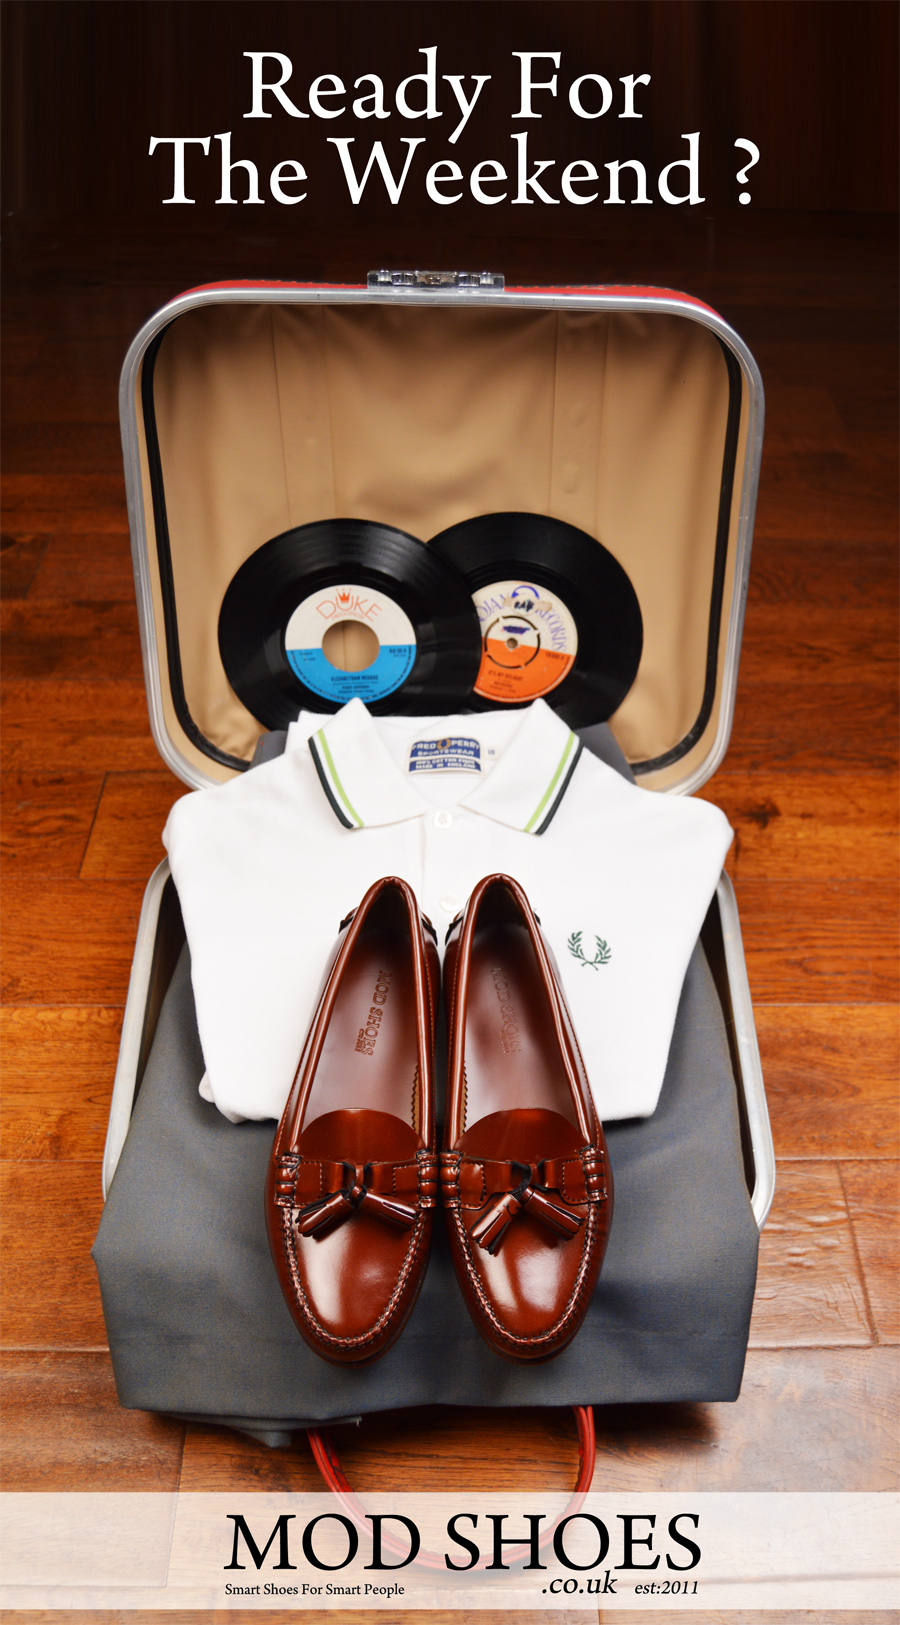 modshoes-labelles-ready-for-the-weekend-01